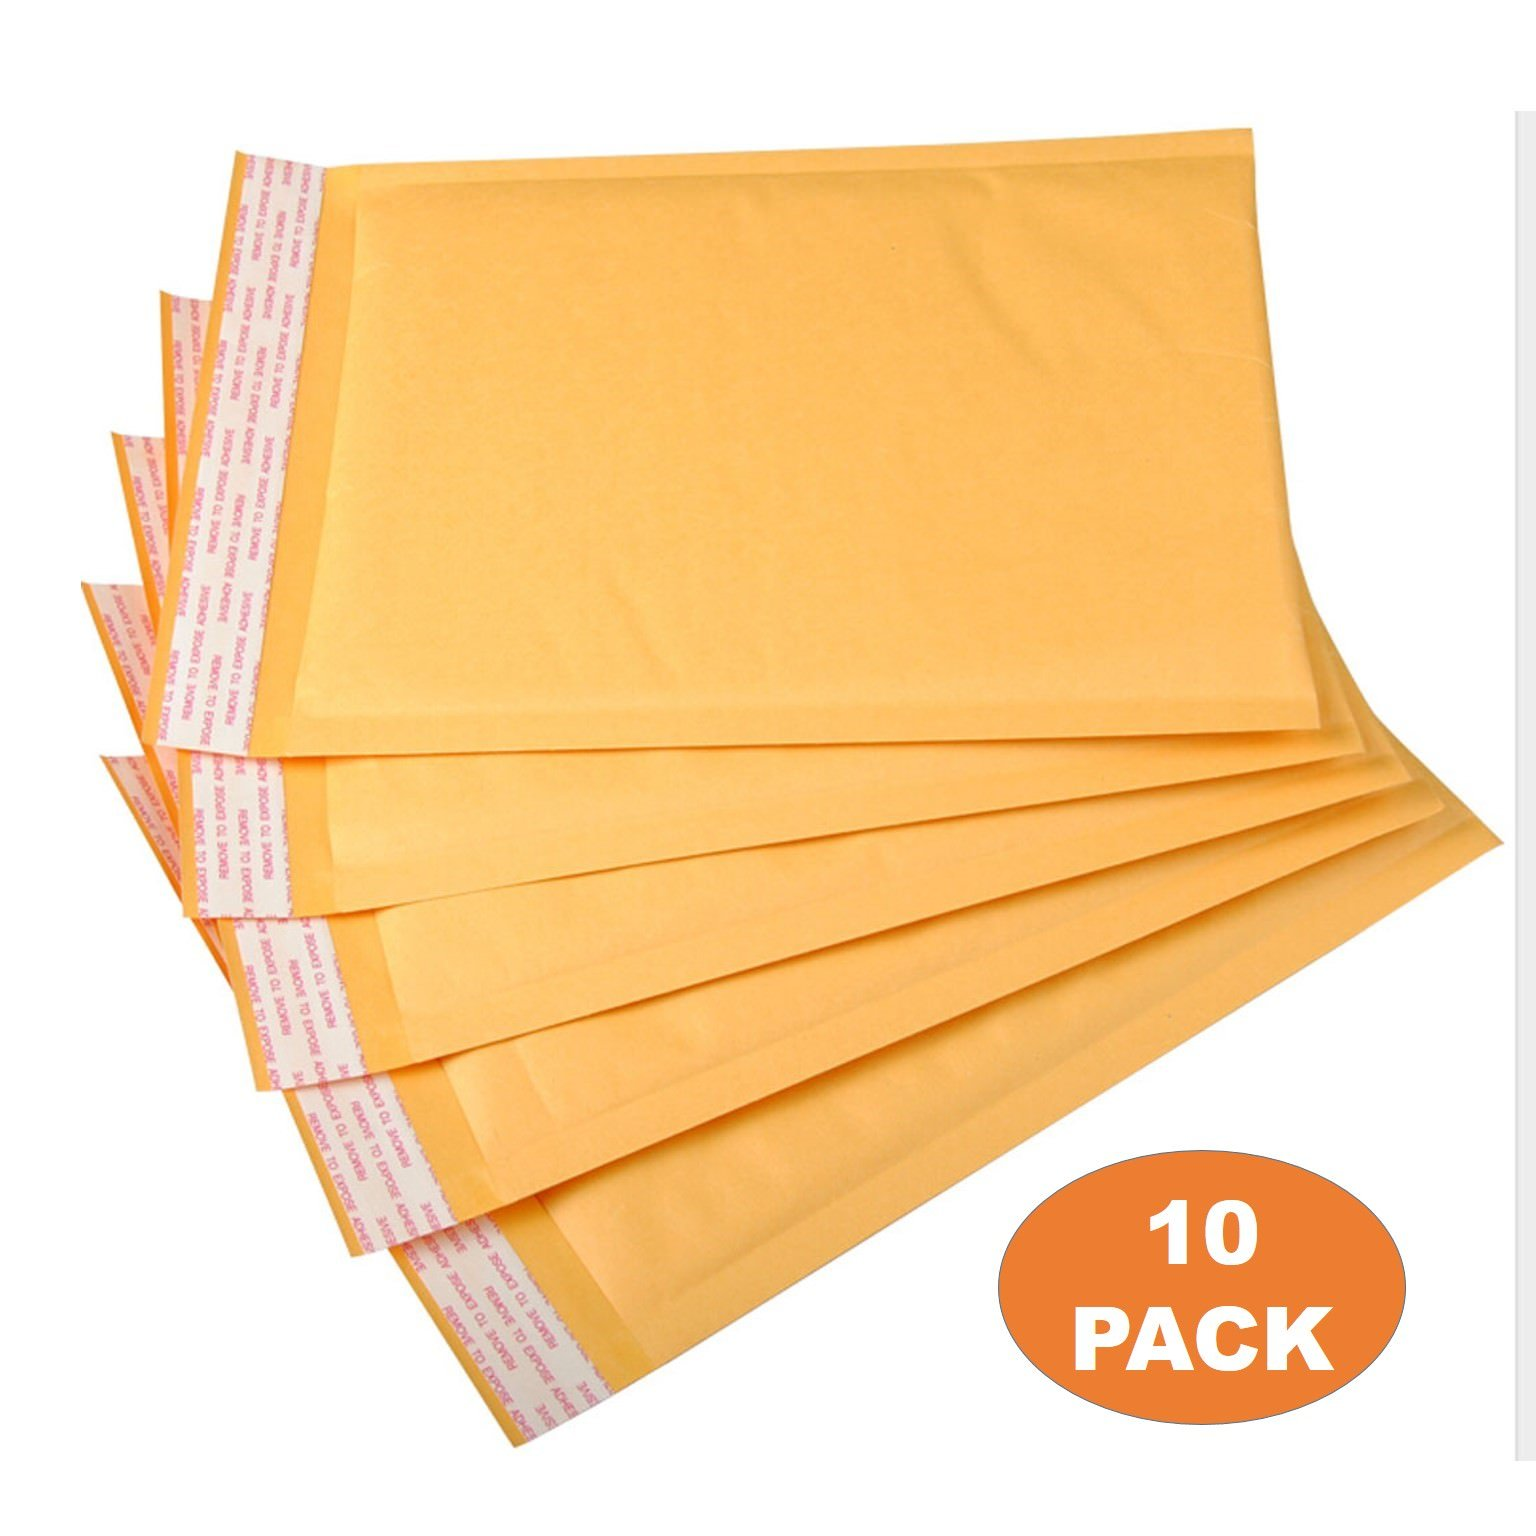 OfficeKit Kraft Bubble Mailers #5 10.5X16 Inches Shipping Padded Envelopes Self Seal Cushioned Mailing Envelope Bags 10 PACK